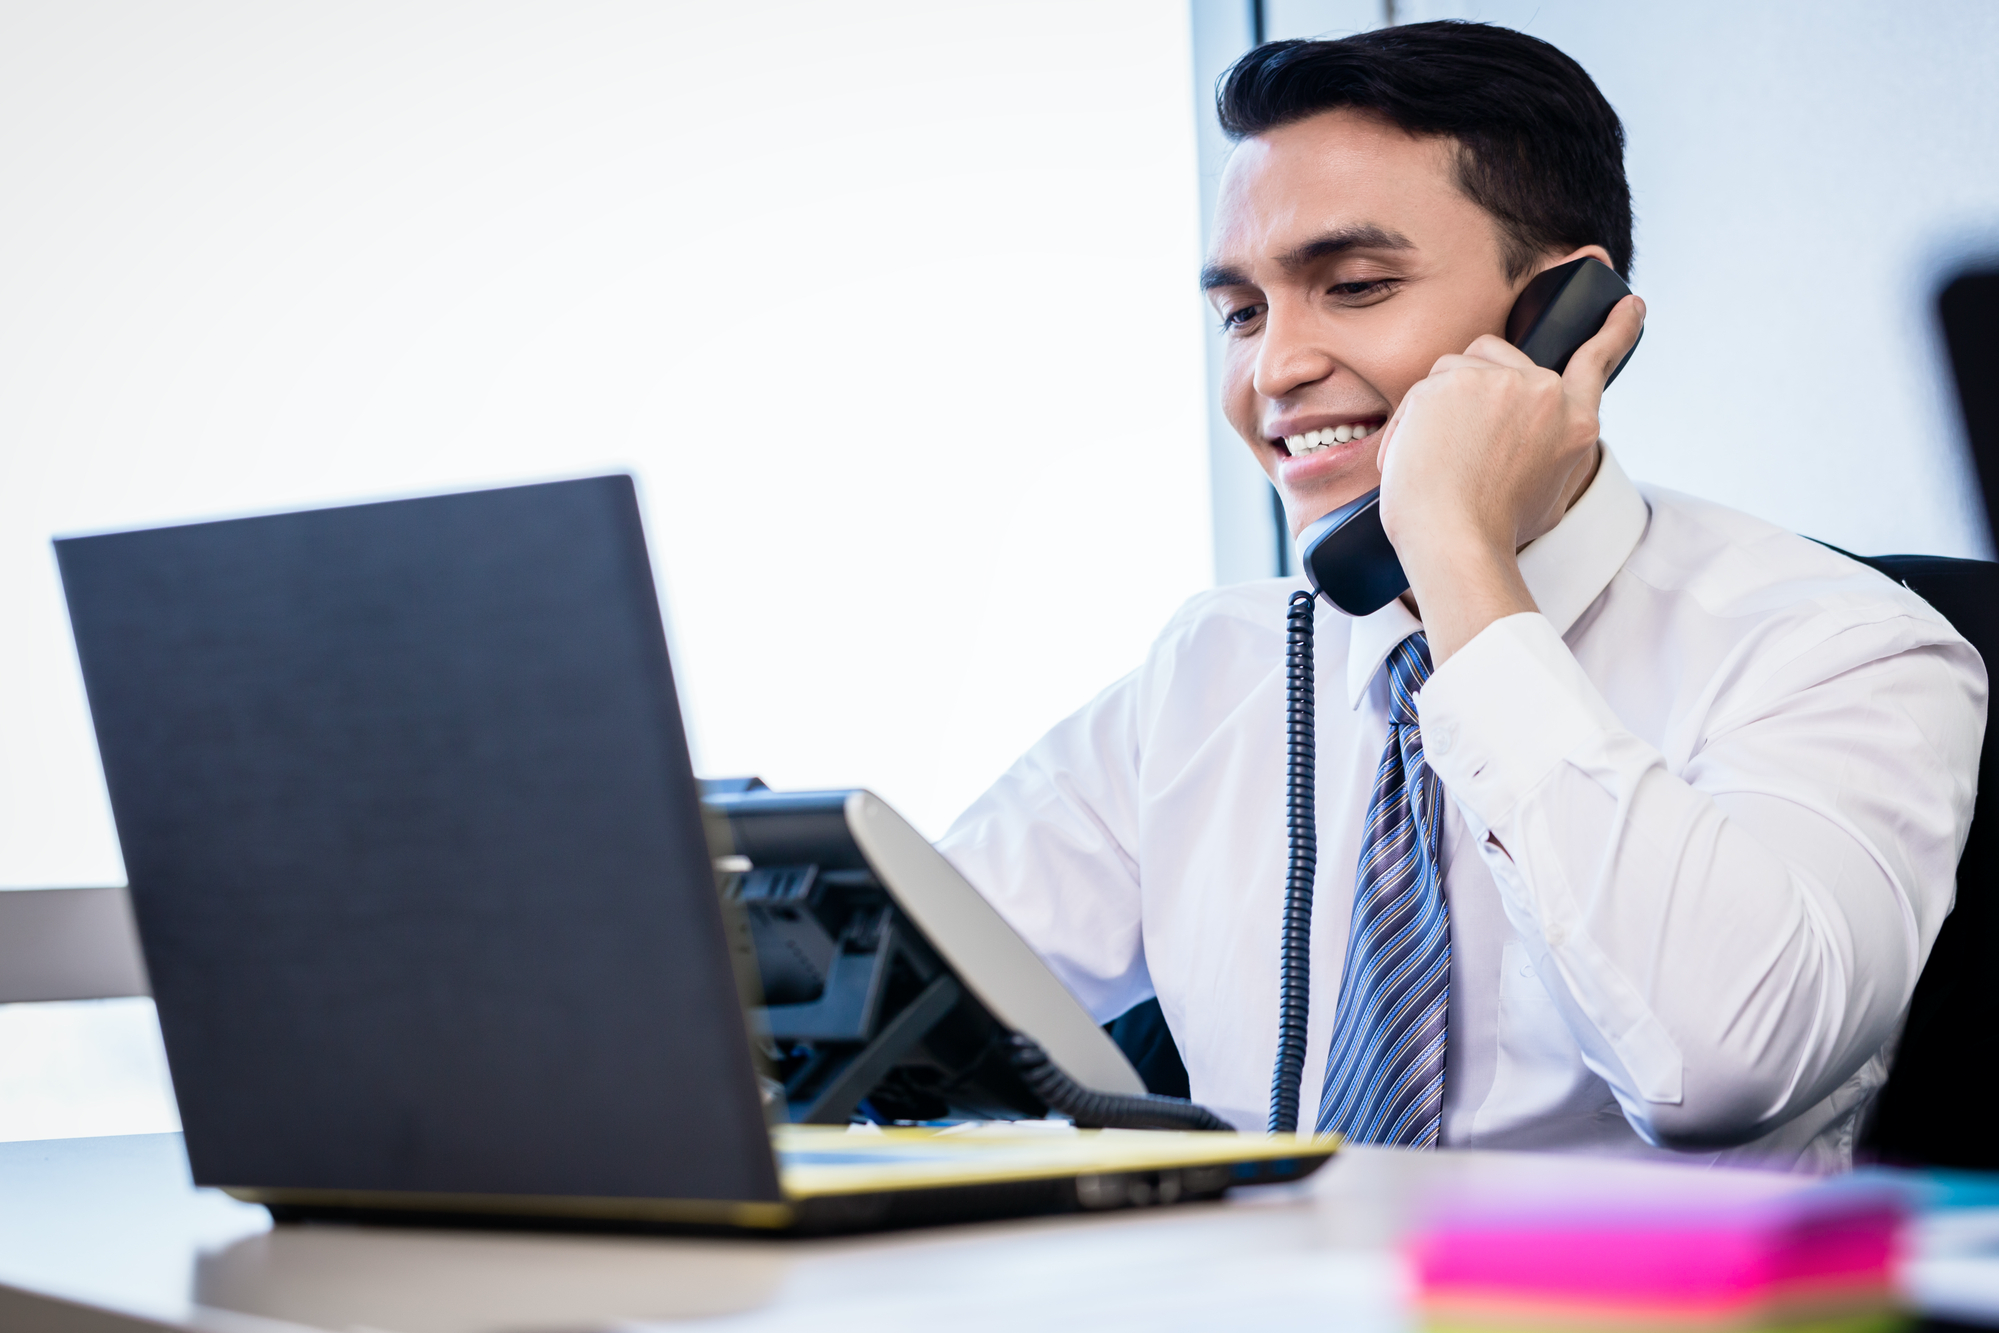 Cold calling doesn't have to be hard, or cold. Here are 10 simple cold-calling tips to heat up cold calls into warm leads and a few hot deals.